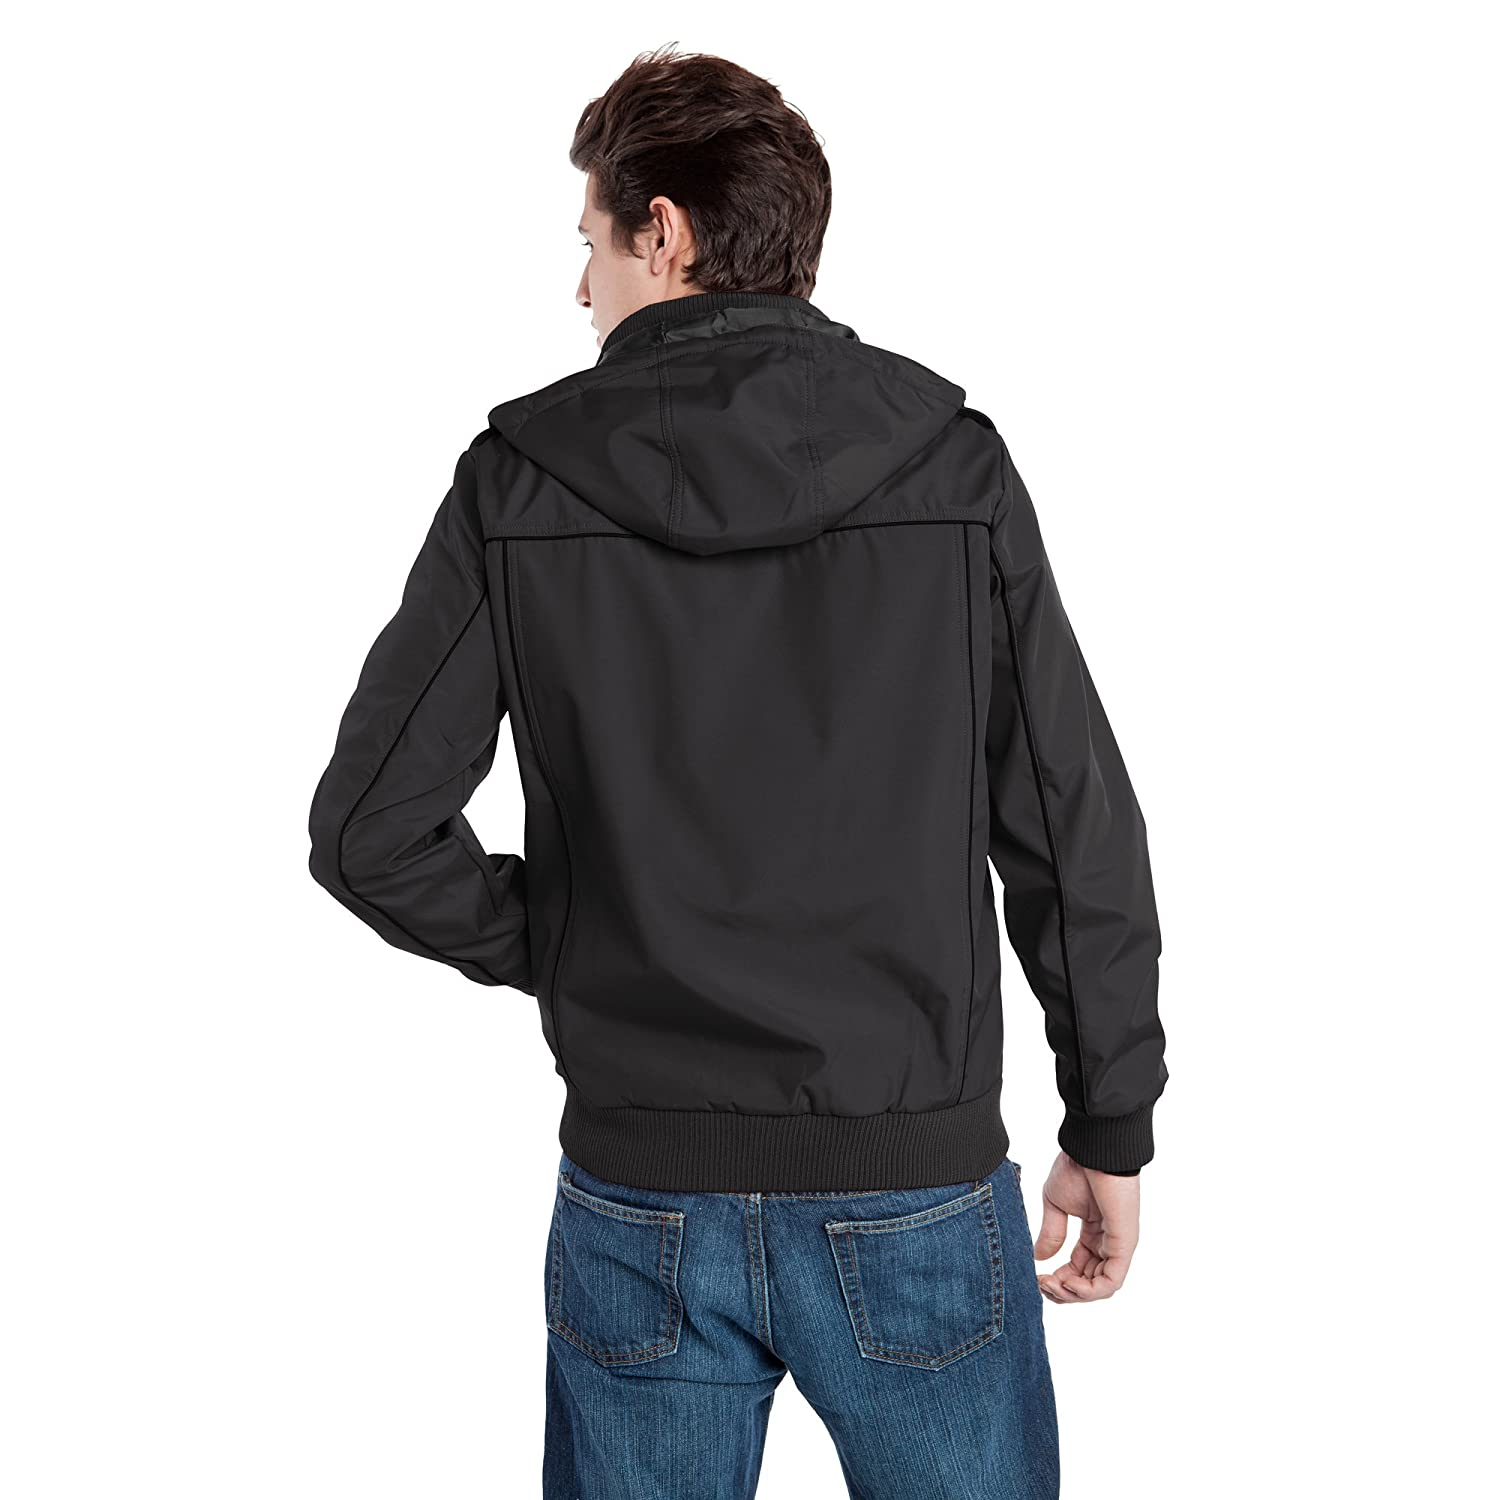 d4fbc64ecae7 Amazon.com  Baubax Travel Jacket - Bomber - Male - Black - XL  Beauty